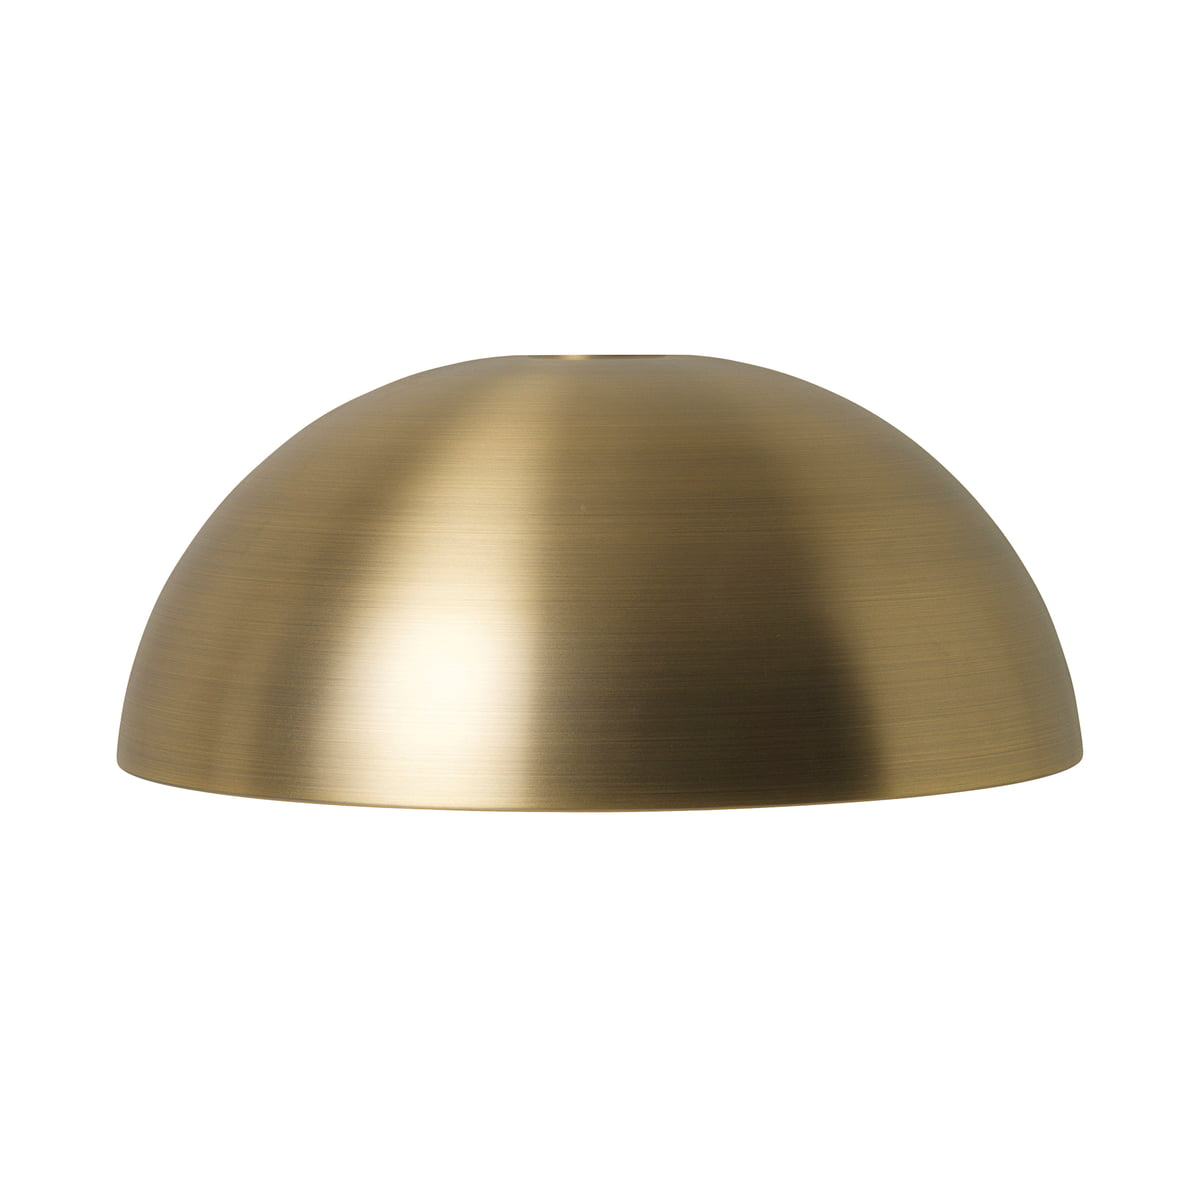 ferm LIVING - Dome Shade Lampenschirm, Messing   Lampen > Lampenschirme und Füsse   ferm living